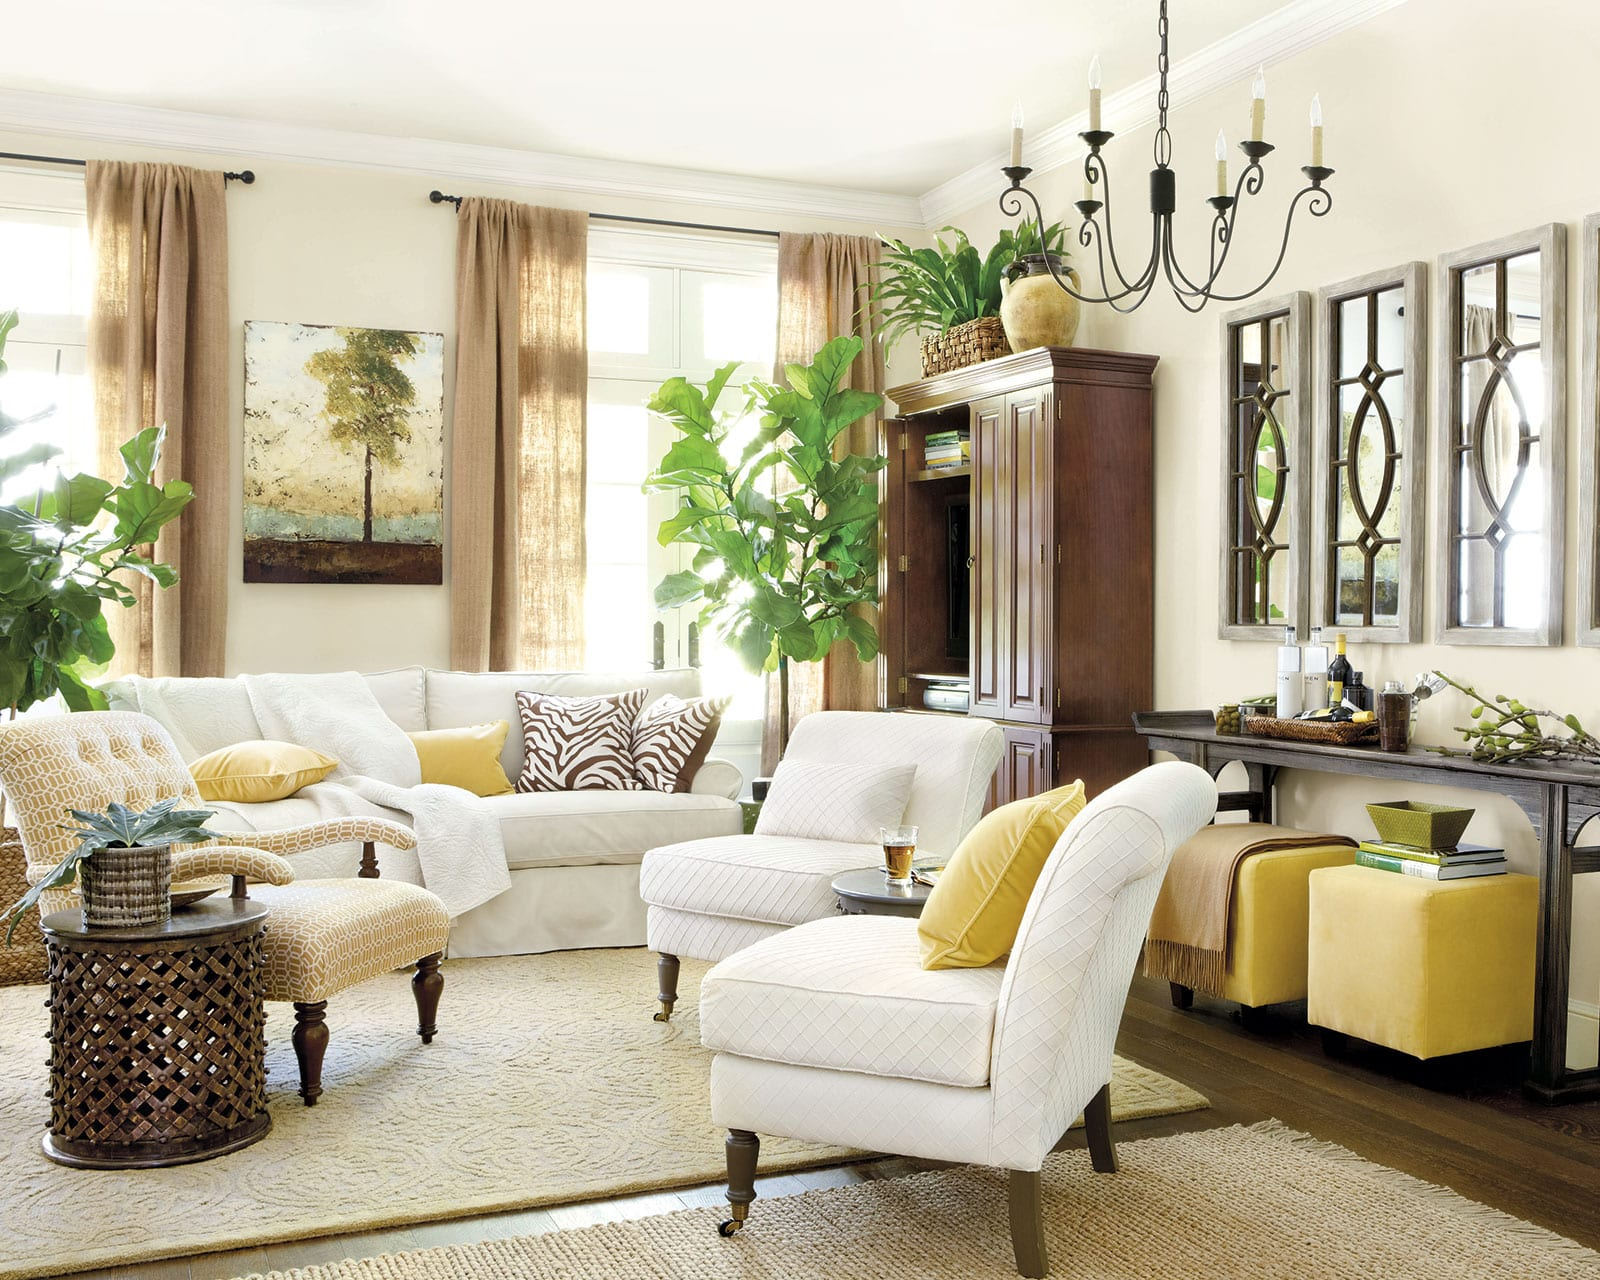 mixing furniture styles living room contemporary ideas 6 tips for wood tones in a how to mix finishes